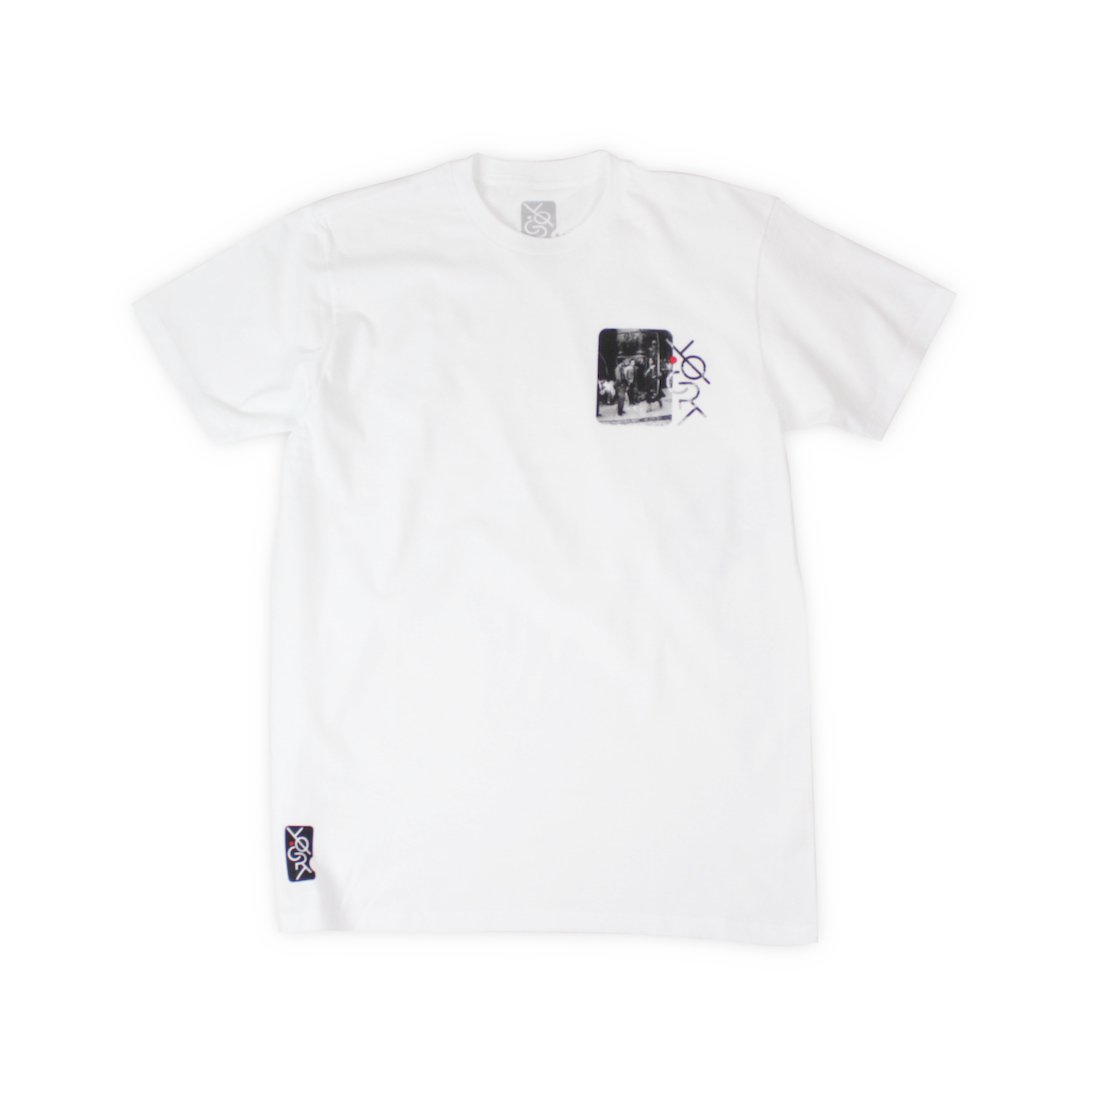 【ANTI HERO】Yogrt Tee